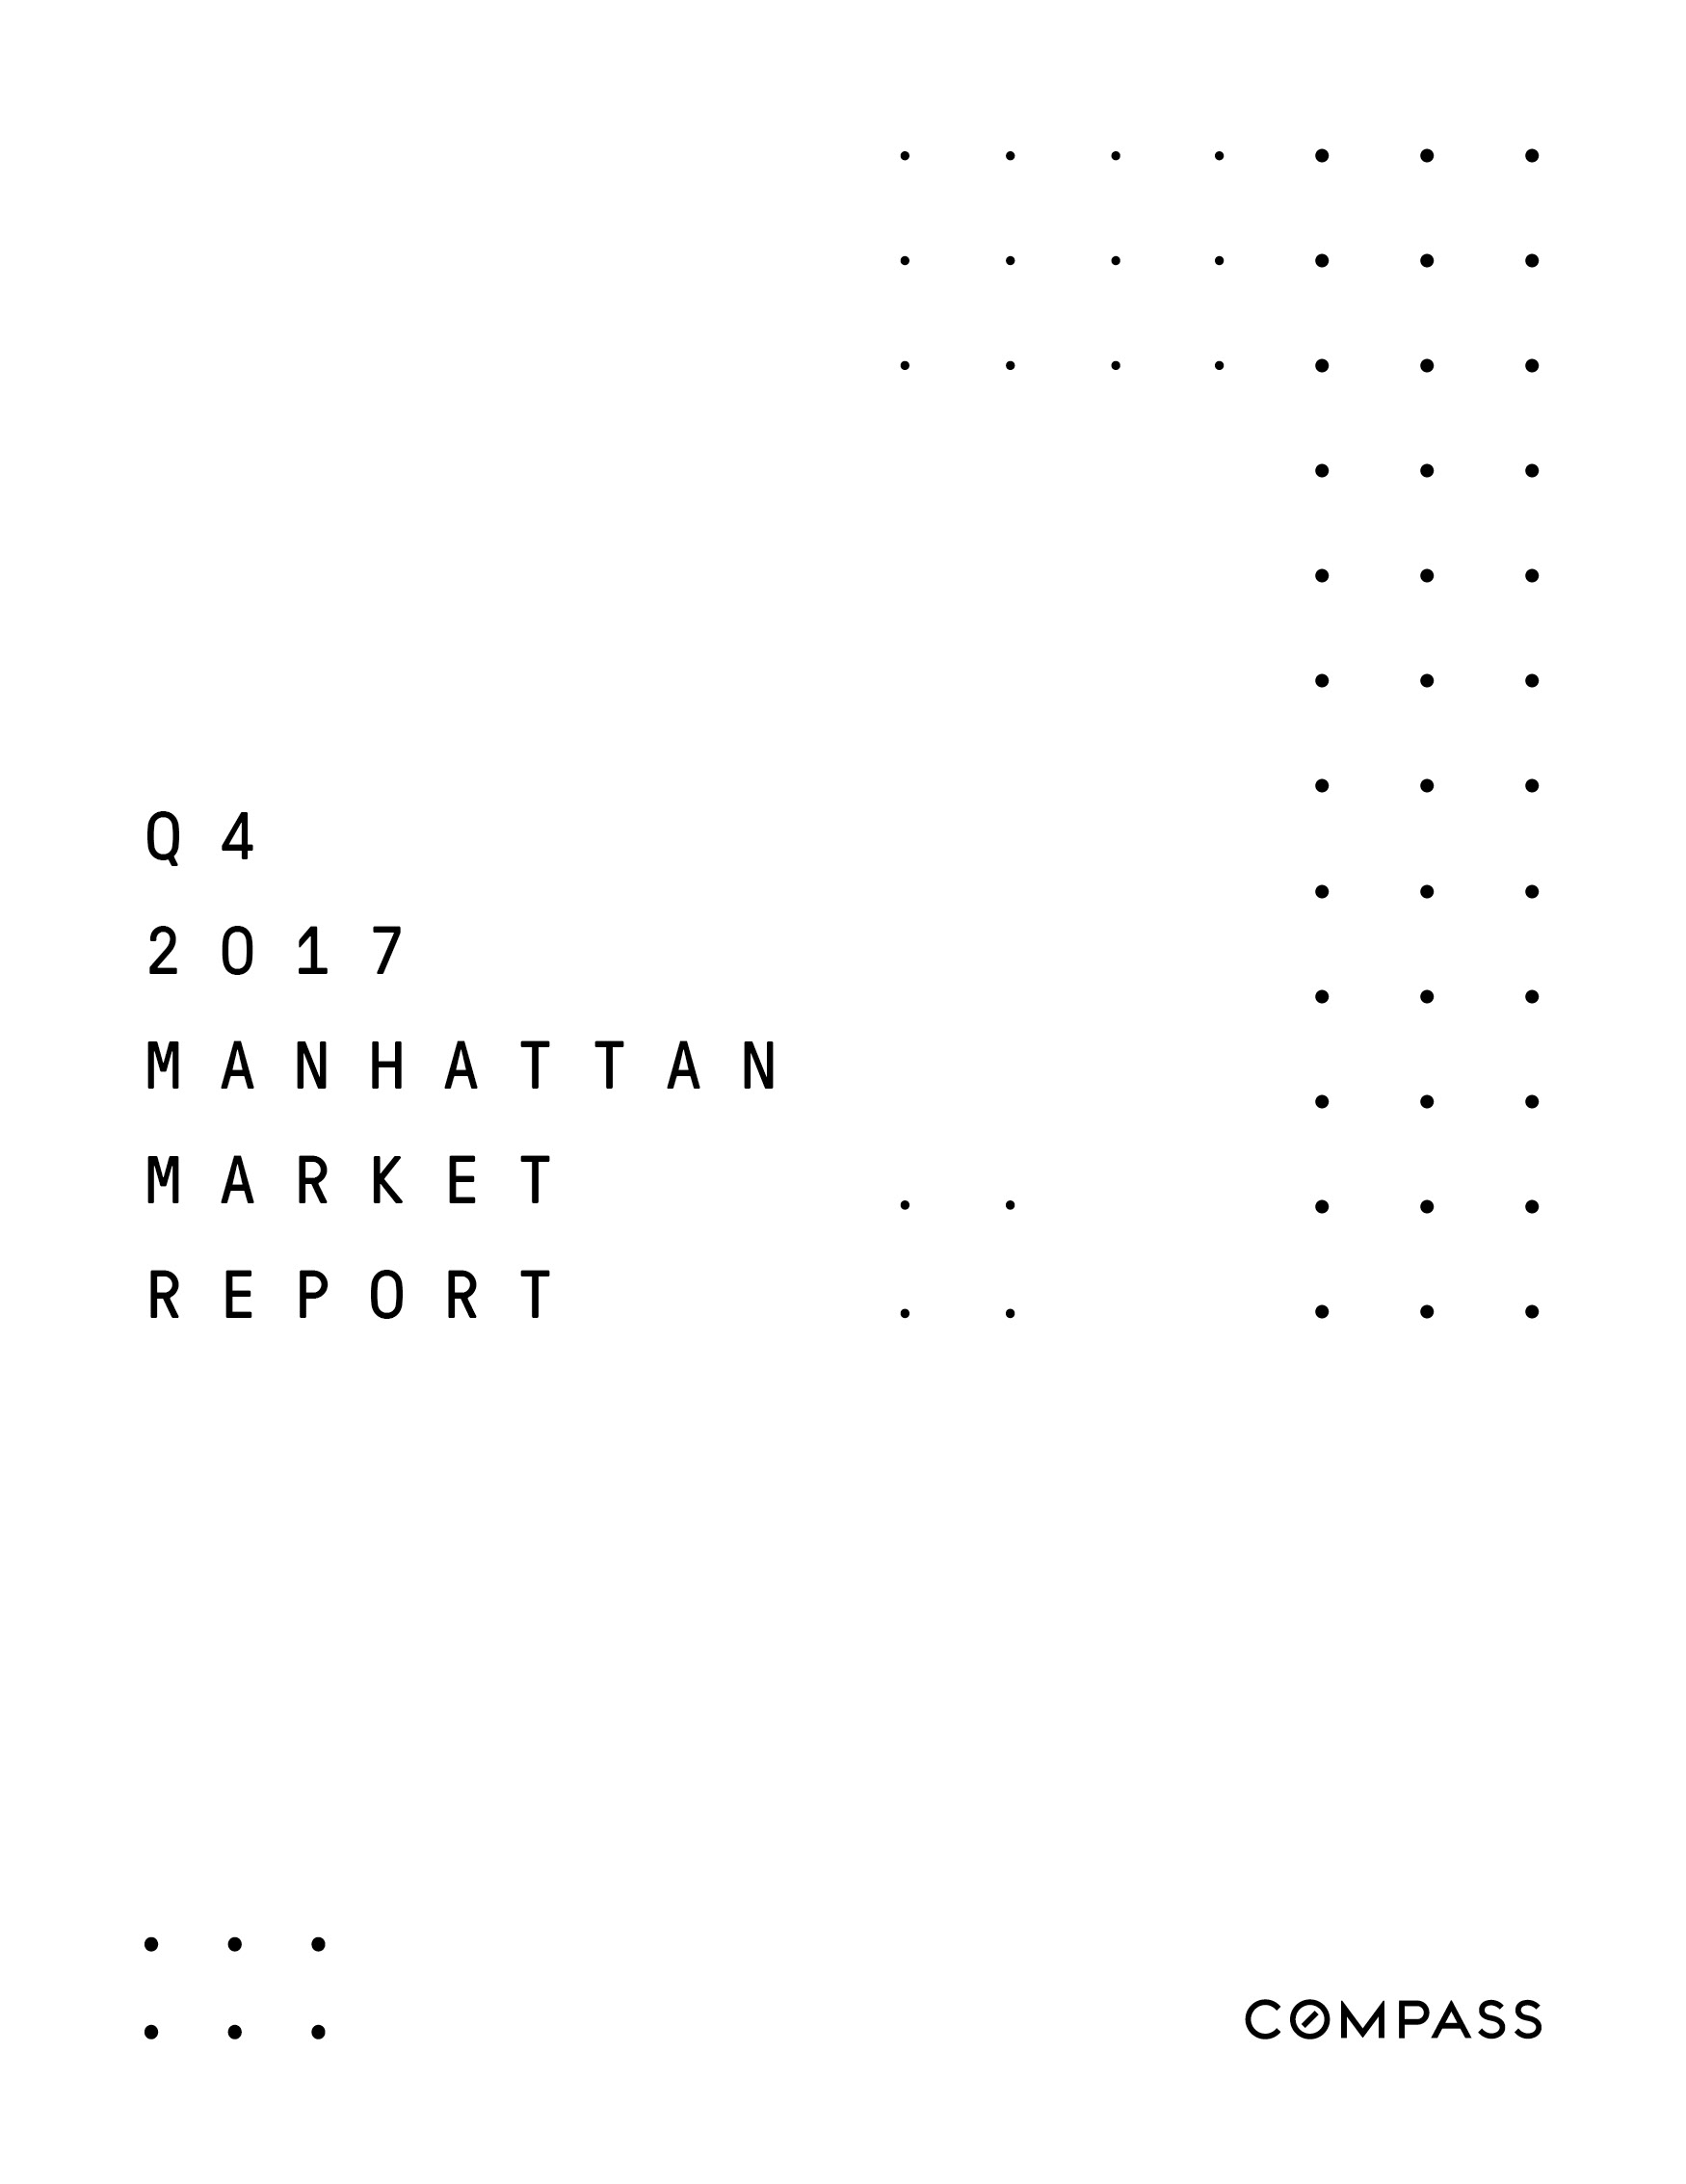 Manhattan Market Report - Q4 2017